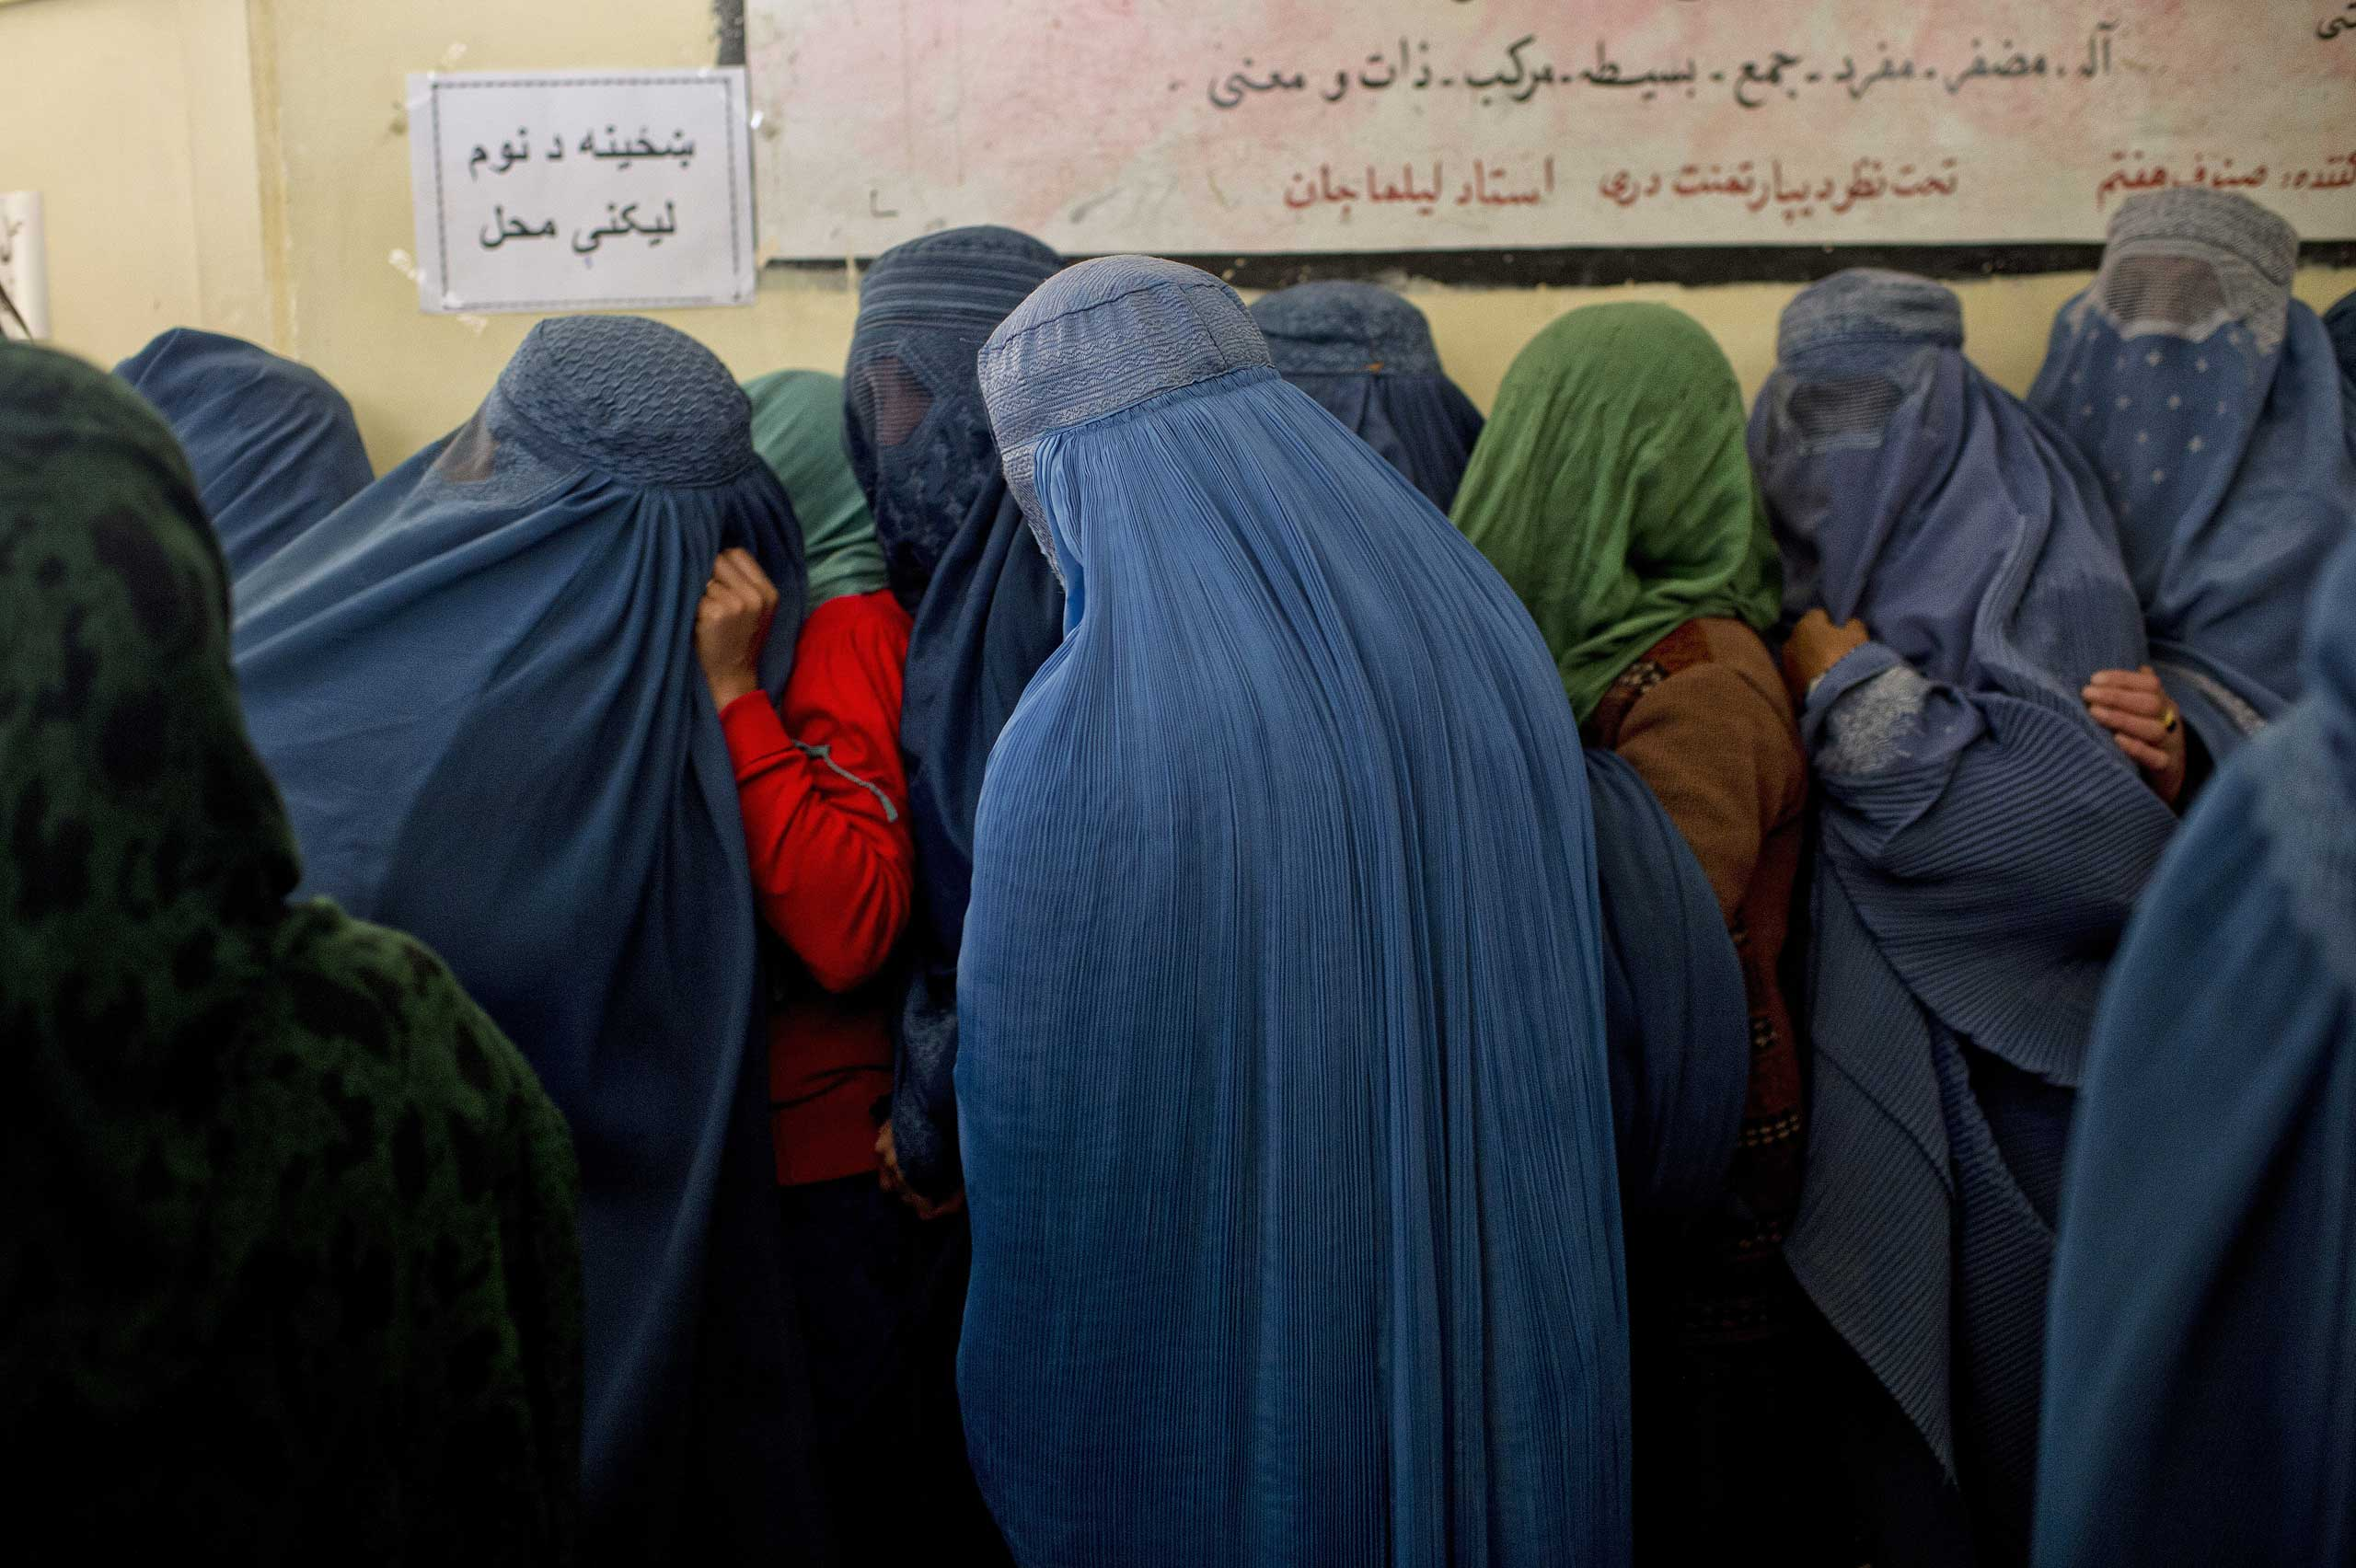 March 25, 2014. Afghans line up for voter registration in Kabul. That morning, a deadly Taliban attack occurred at a nearby election-commission office.From  And Women Shall Lead: Lynsey Addario on the New Face of Afghanistan